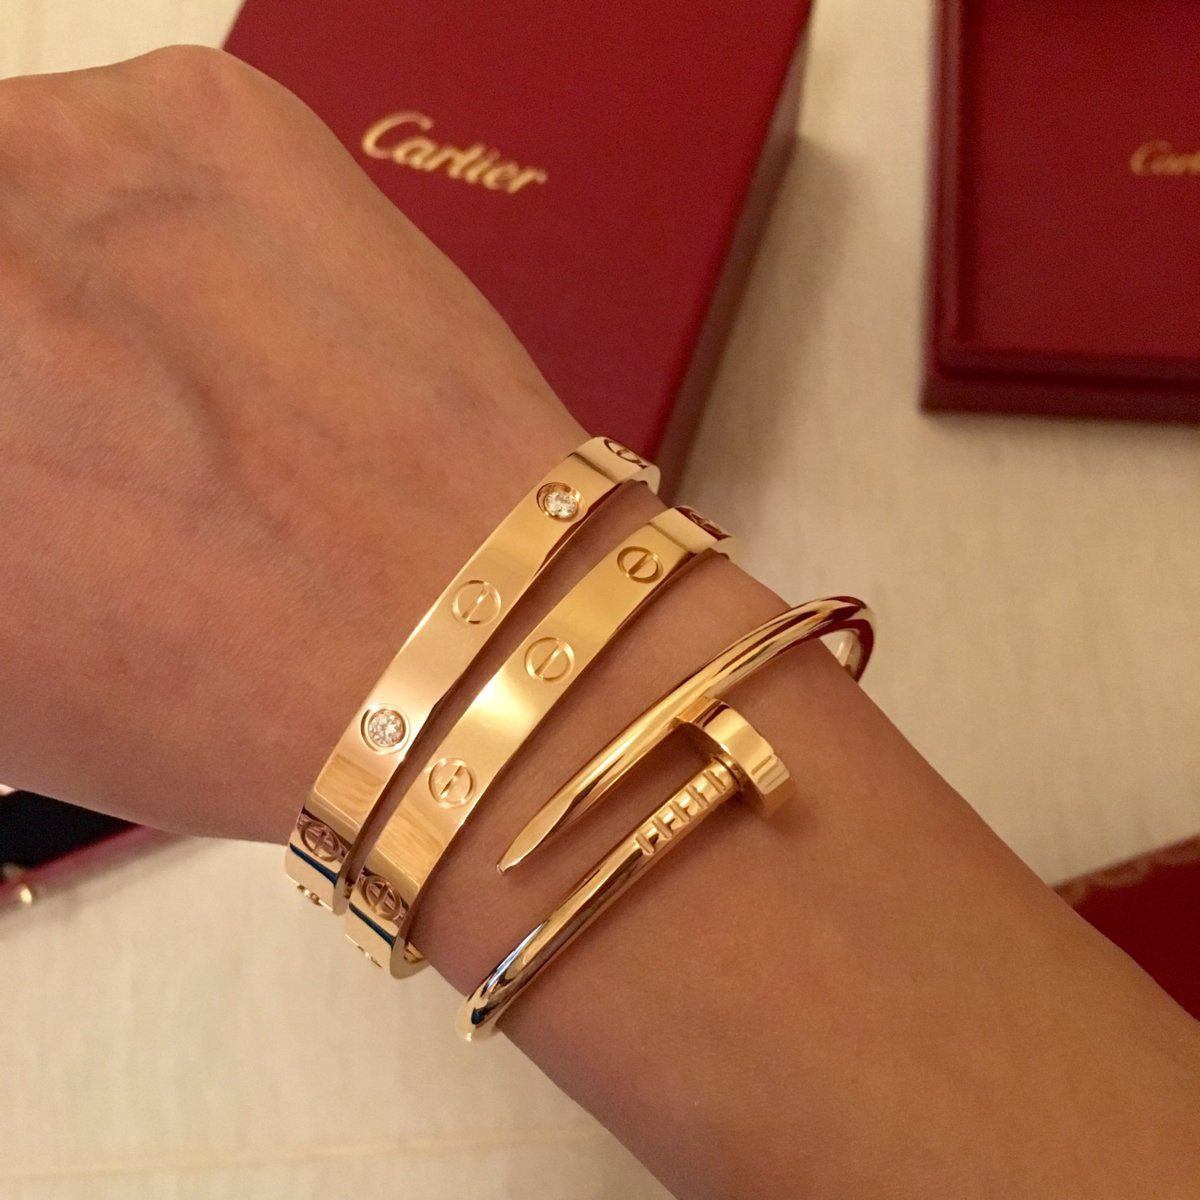 clasp s visonjewelry silver steel bracelet beading on stainless bangles cuff with com gold online ball dhgate screw in product bracelets store rose piece bangle